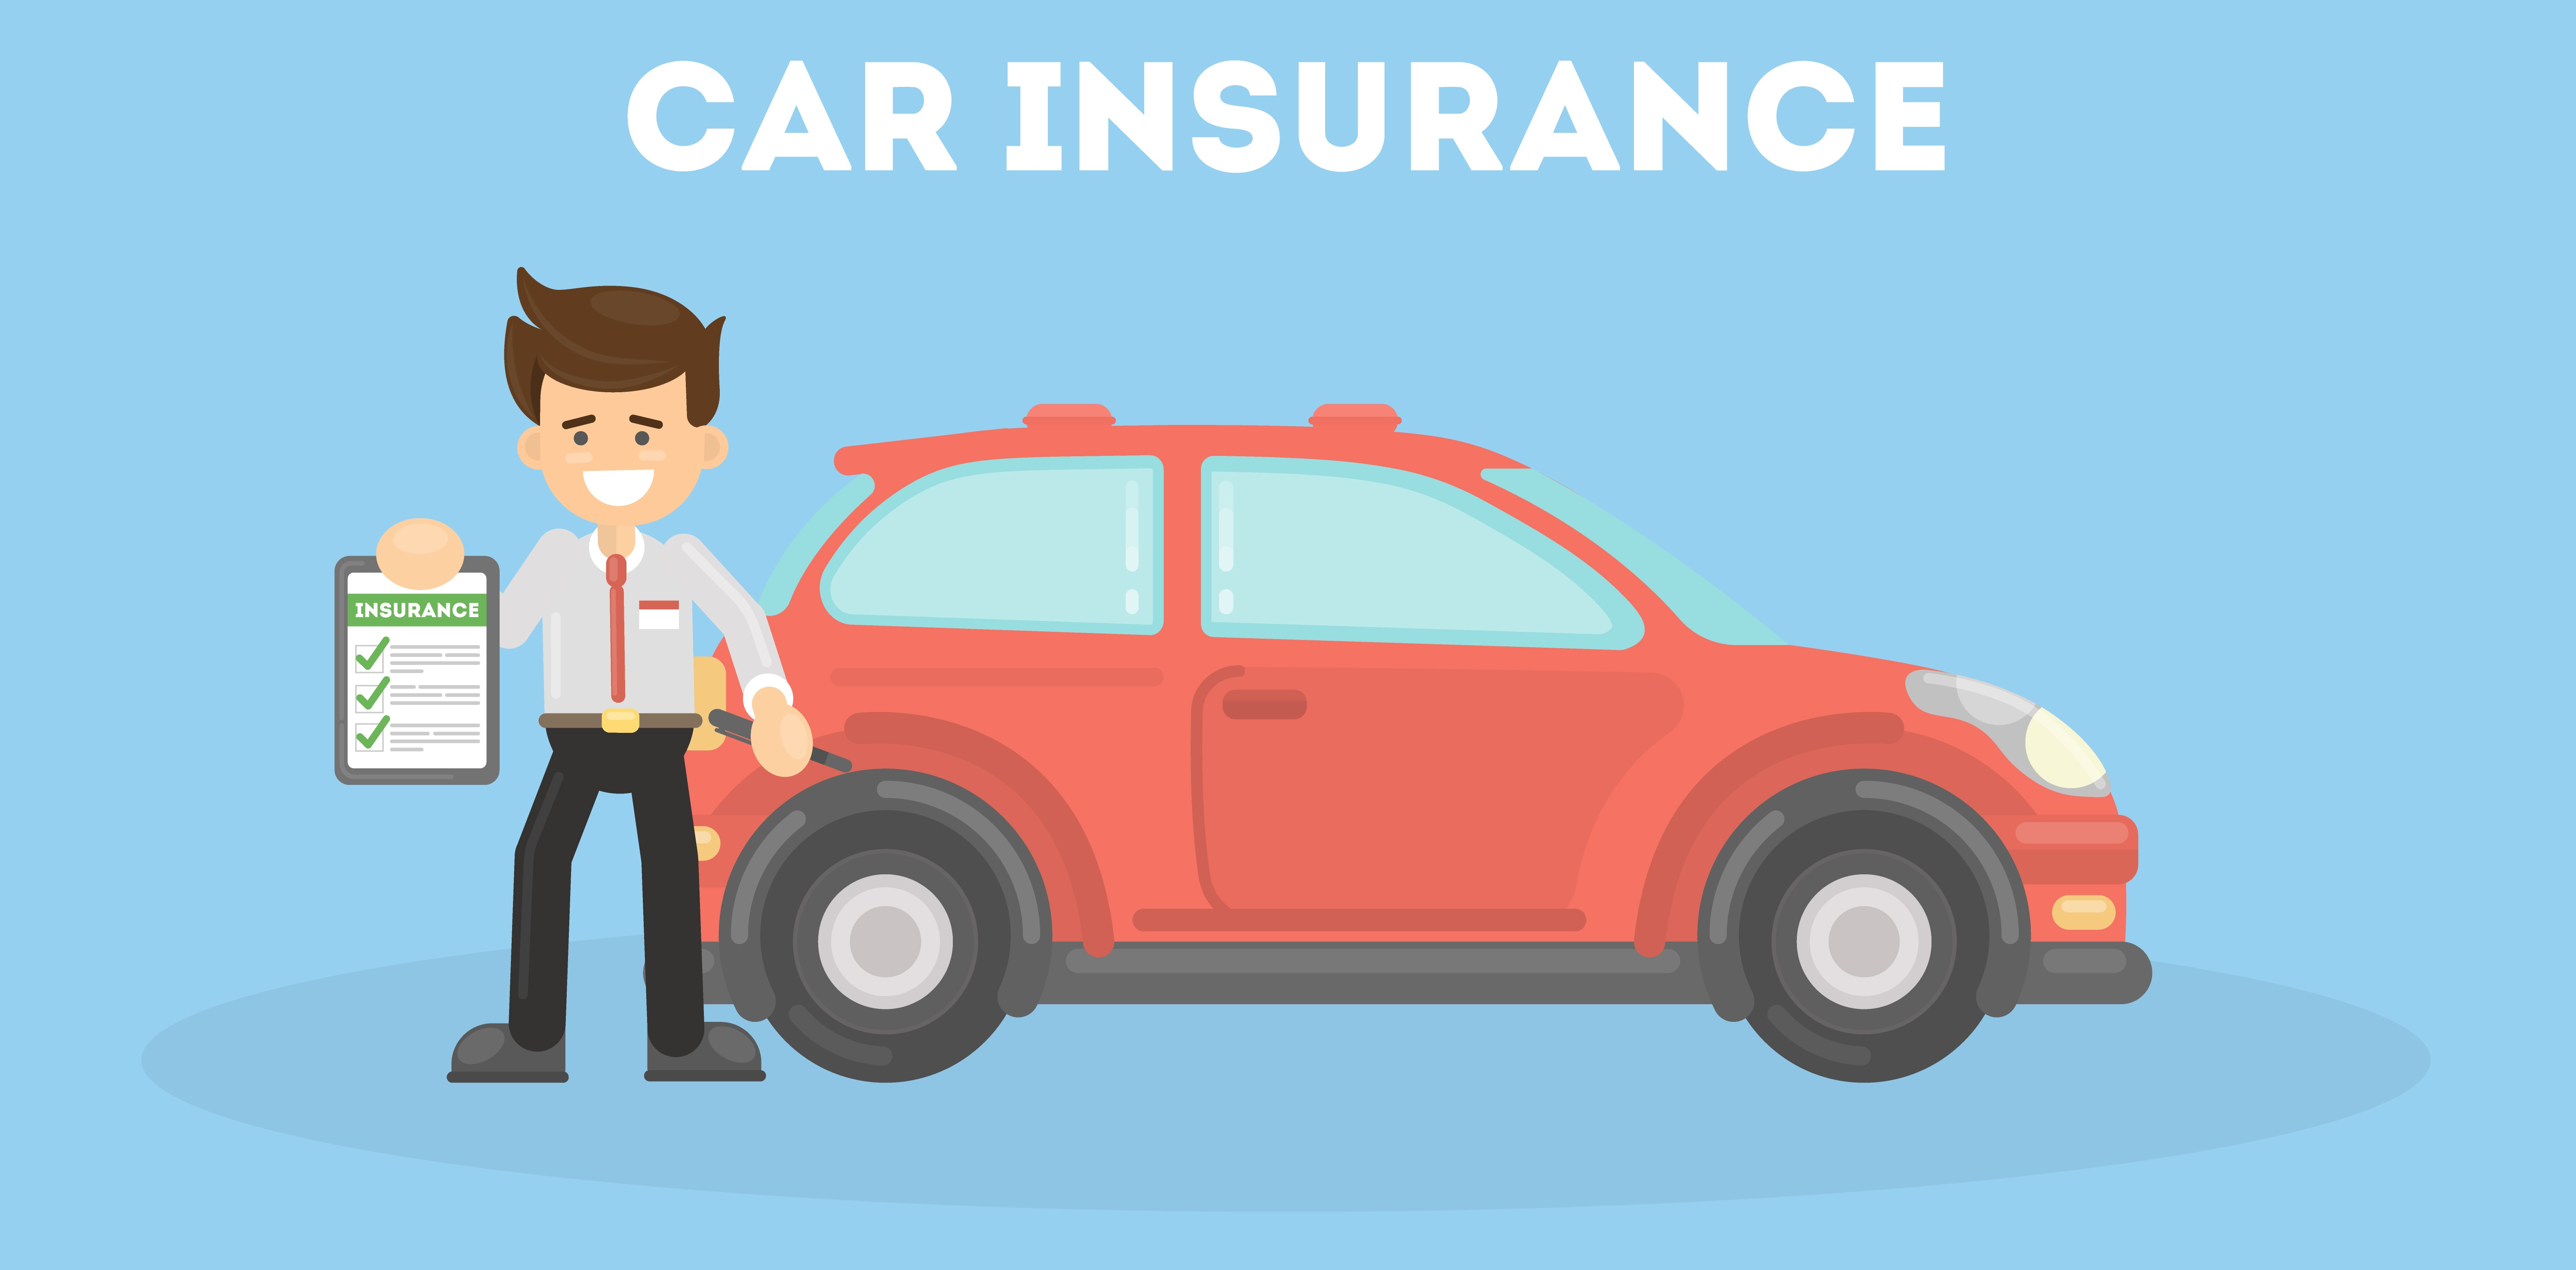 Car Insurance Savings - 6 Expert Tips You Never Knew